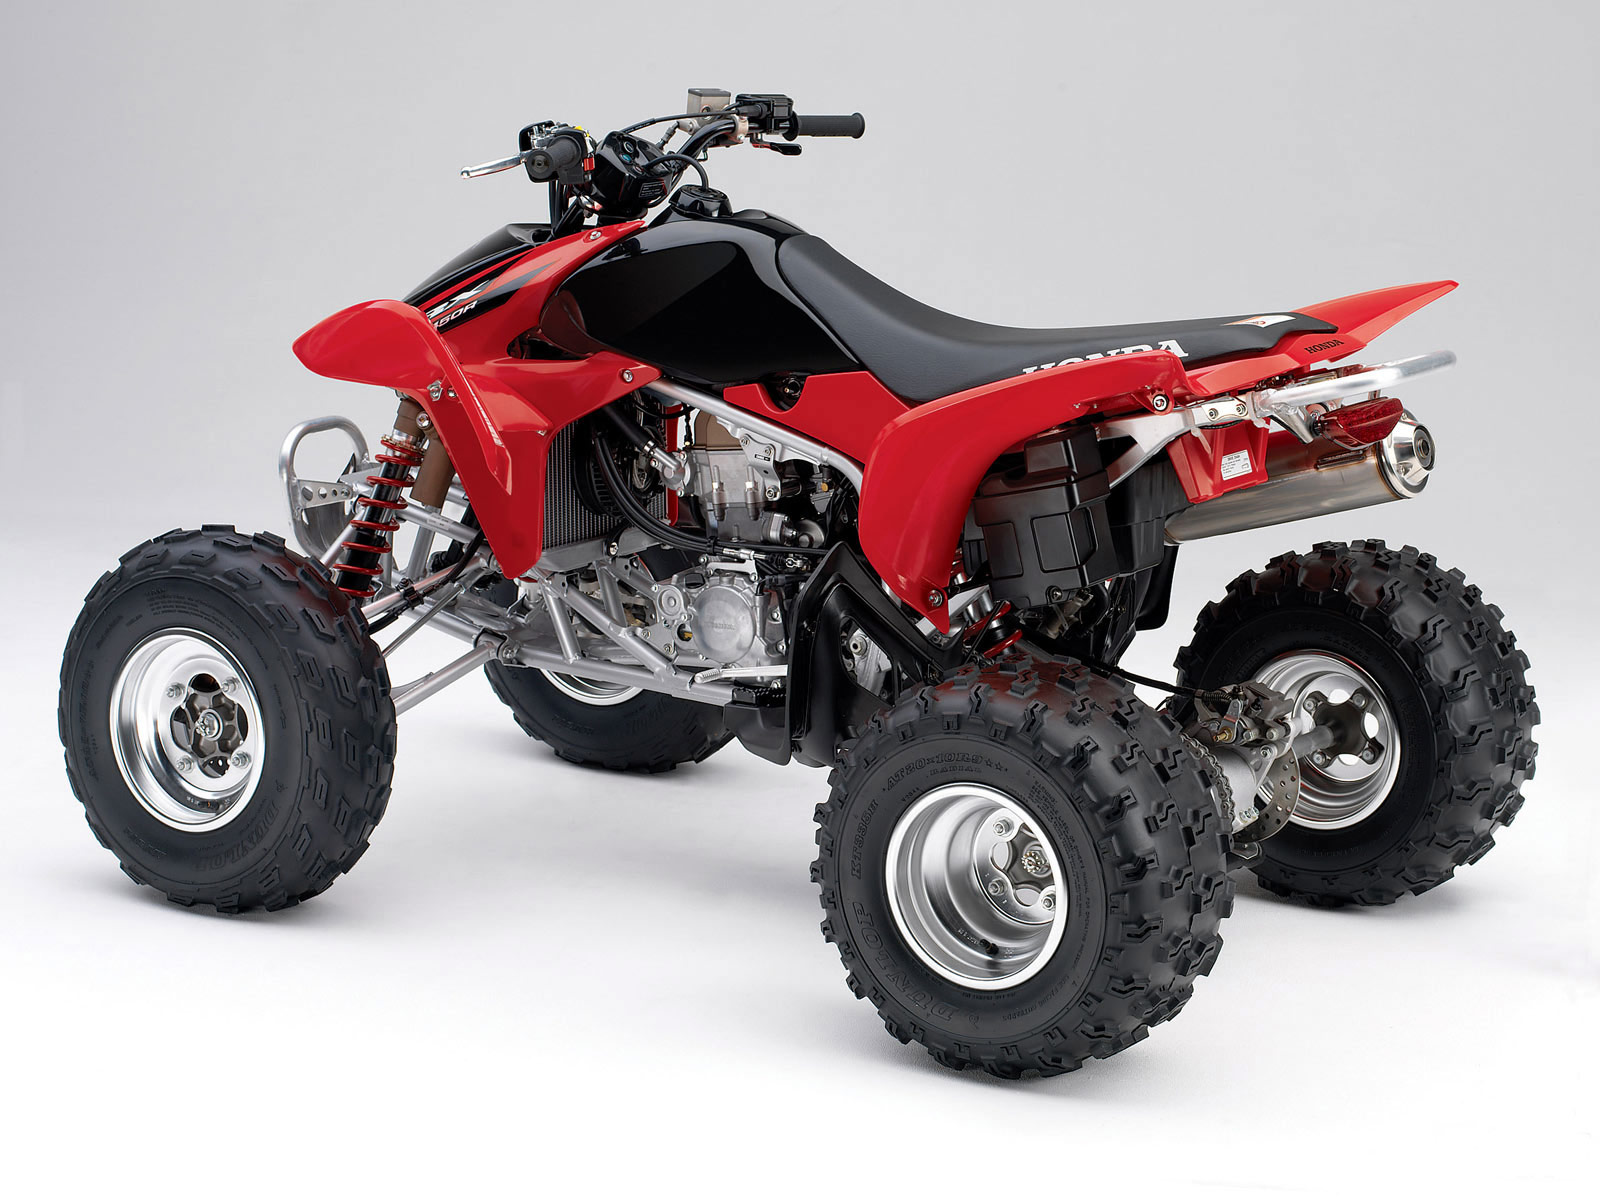 dealers dealer yamaha rubicon ms a dur atv motors best lake corinth honda hill cars bennche mississippi modified flex marine